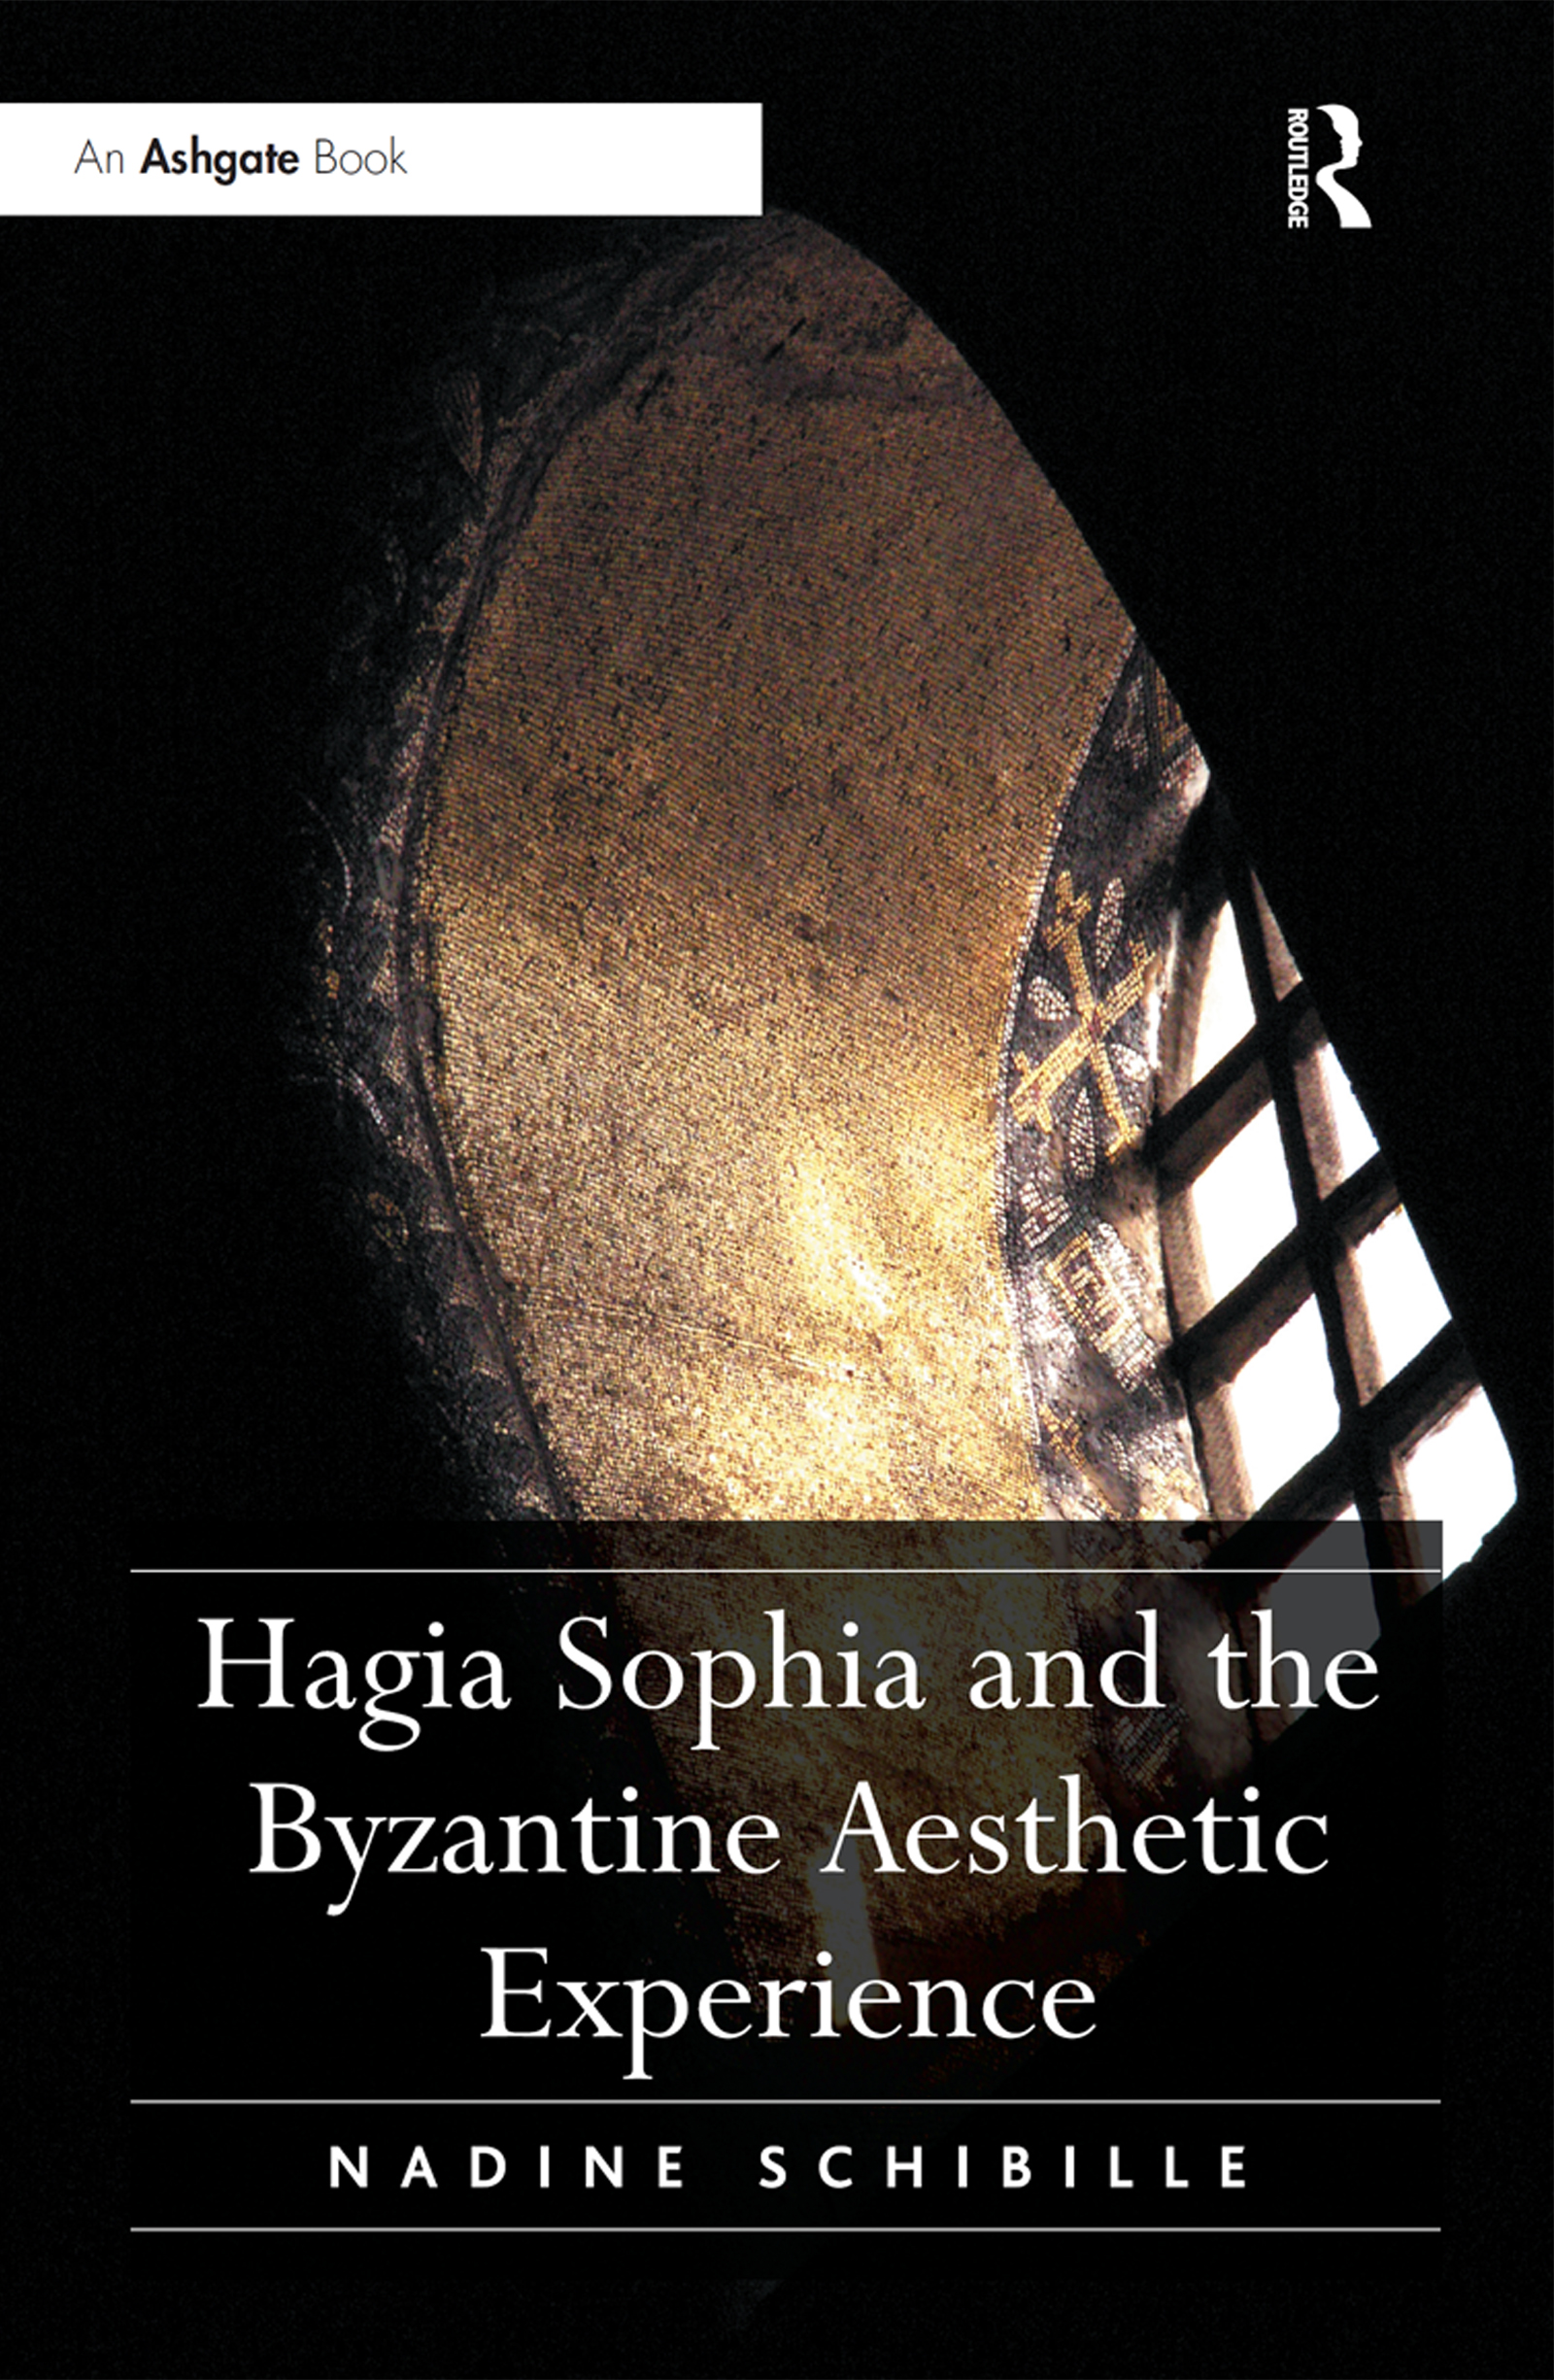 Hagia Sophia and the Byzantine Aesthetic Experience